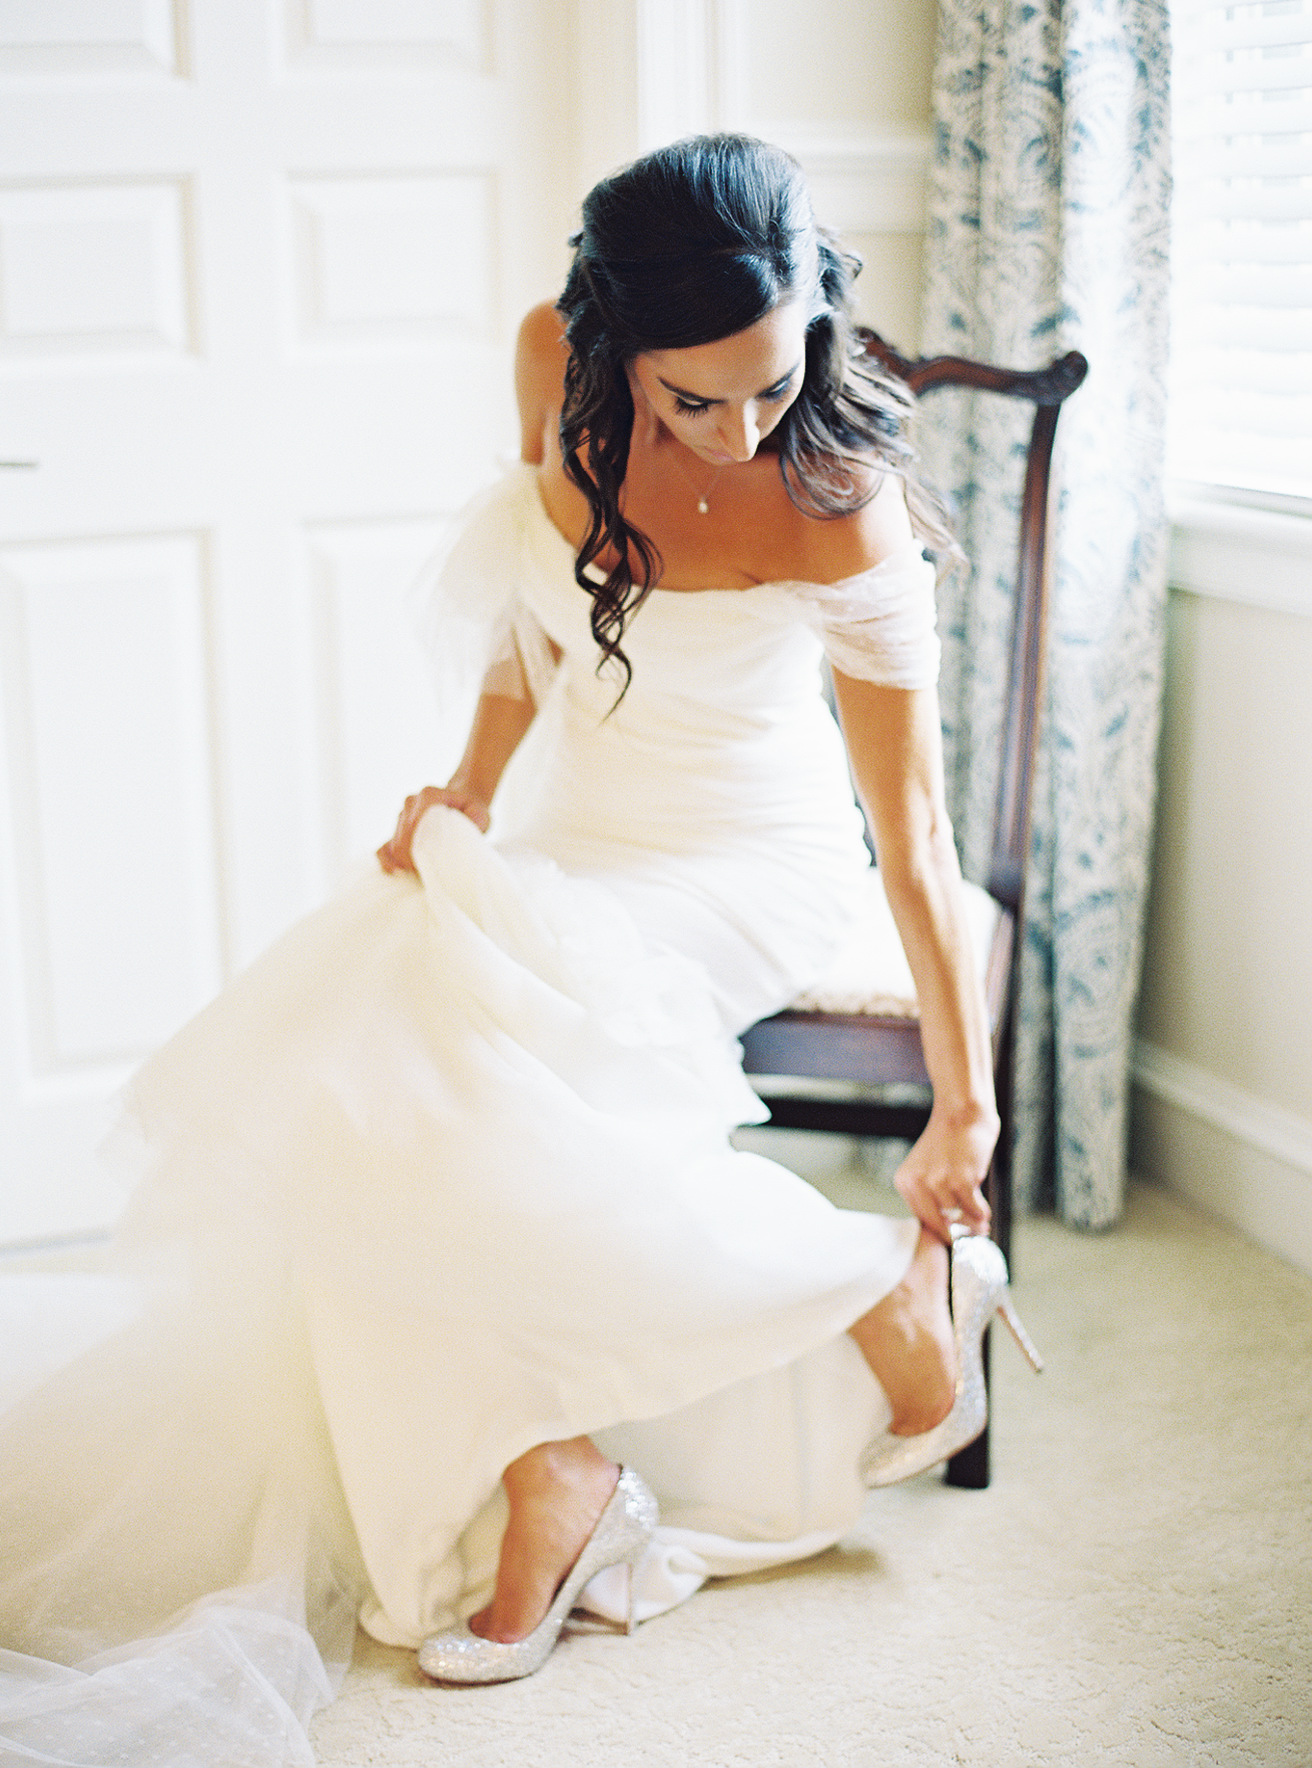 0136adam barnes photography keswick hall charlottesville virginia wedding.jpg